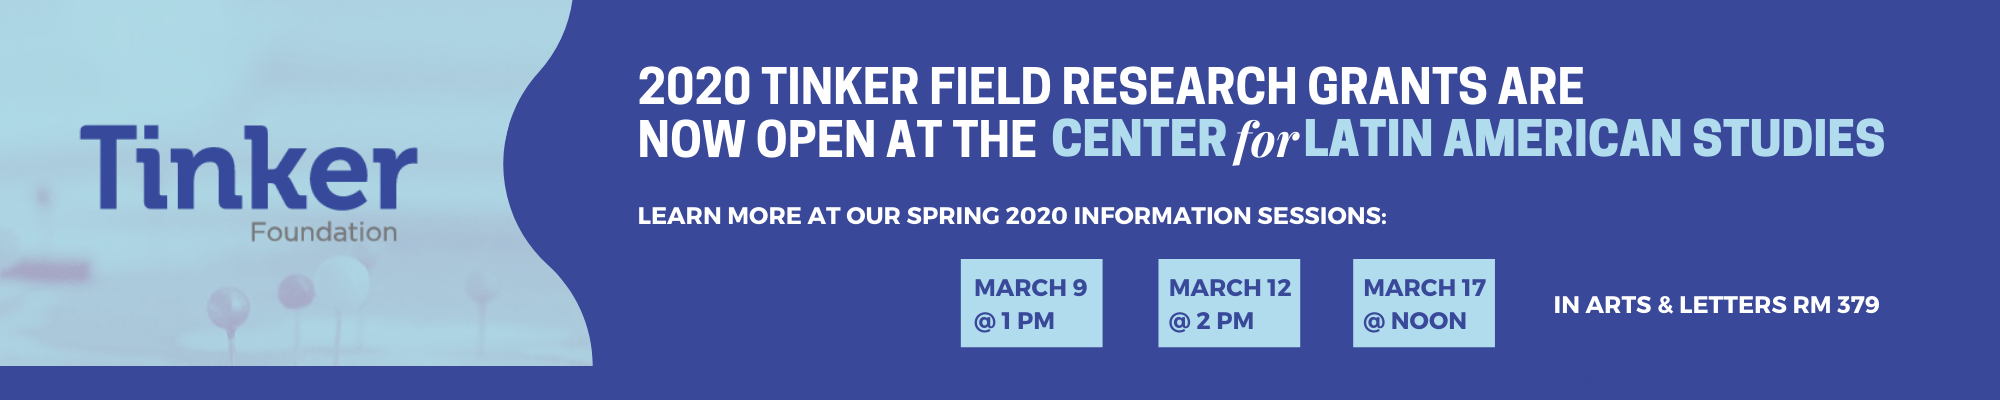 2020 TINKER FIELD RESEARCH GRANTS ARE NOW OPEN AT THE CENTER for LATIN AMERICAN STUDIES Learn more at our Spring 2020 Info Sessions: March 9@1pm, March 12@2pm, March 17@noon in AL-379